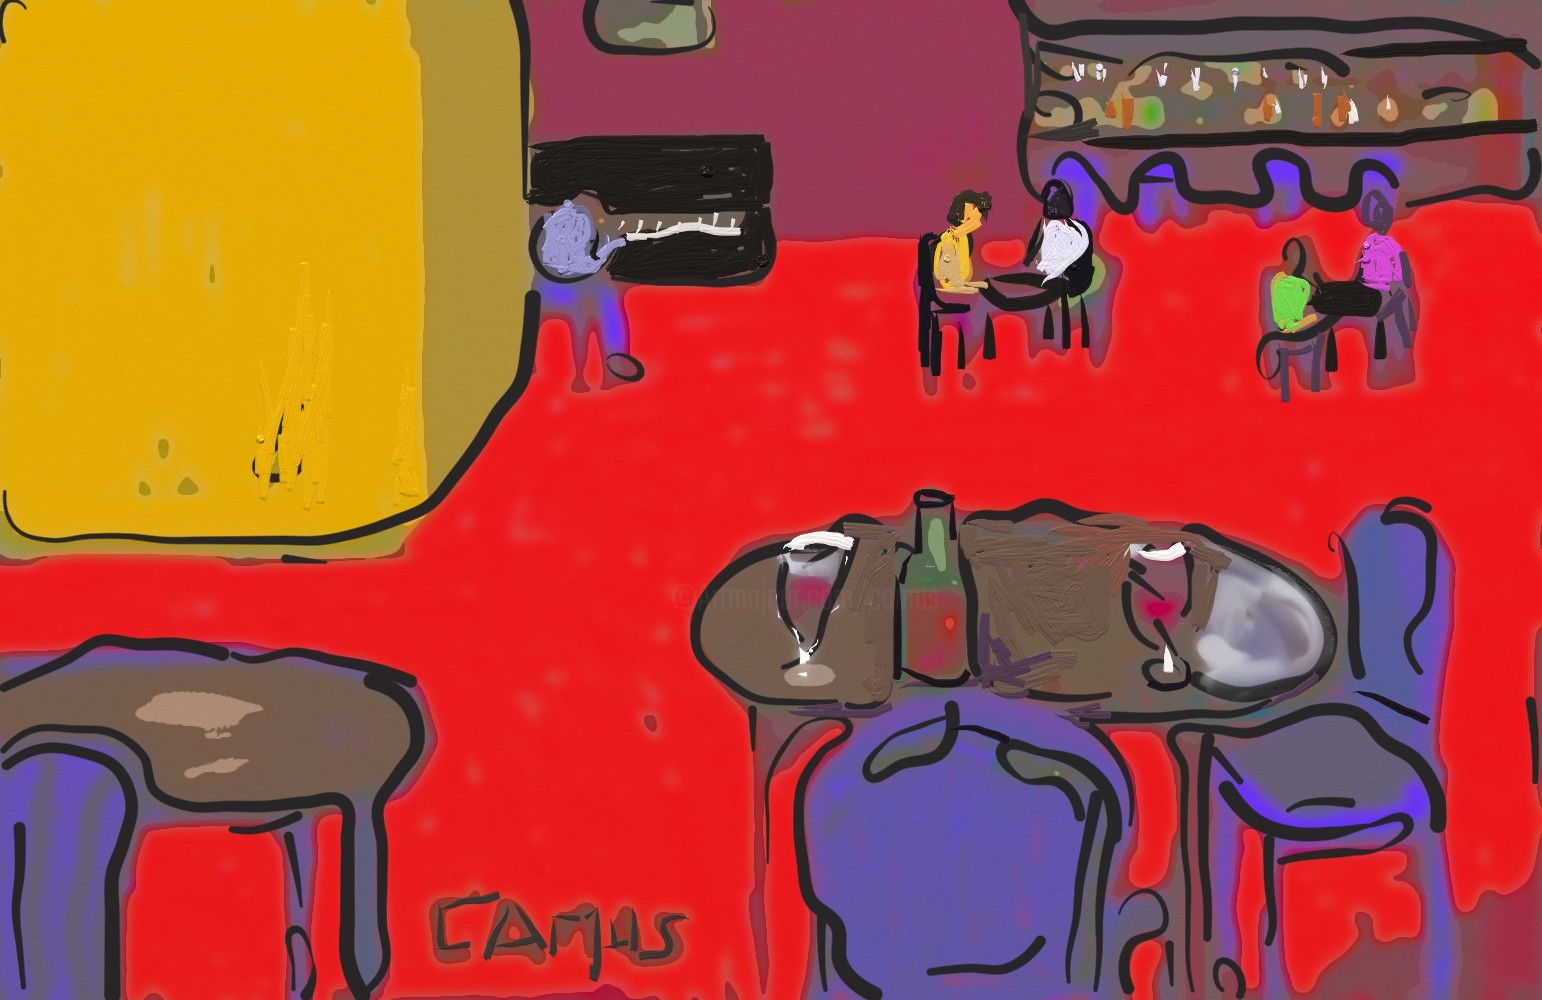 CamusArtist - bar-art-1.jpg